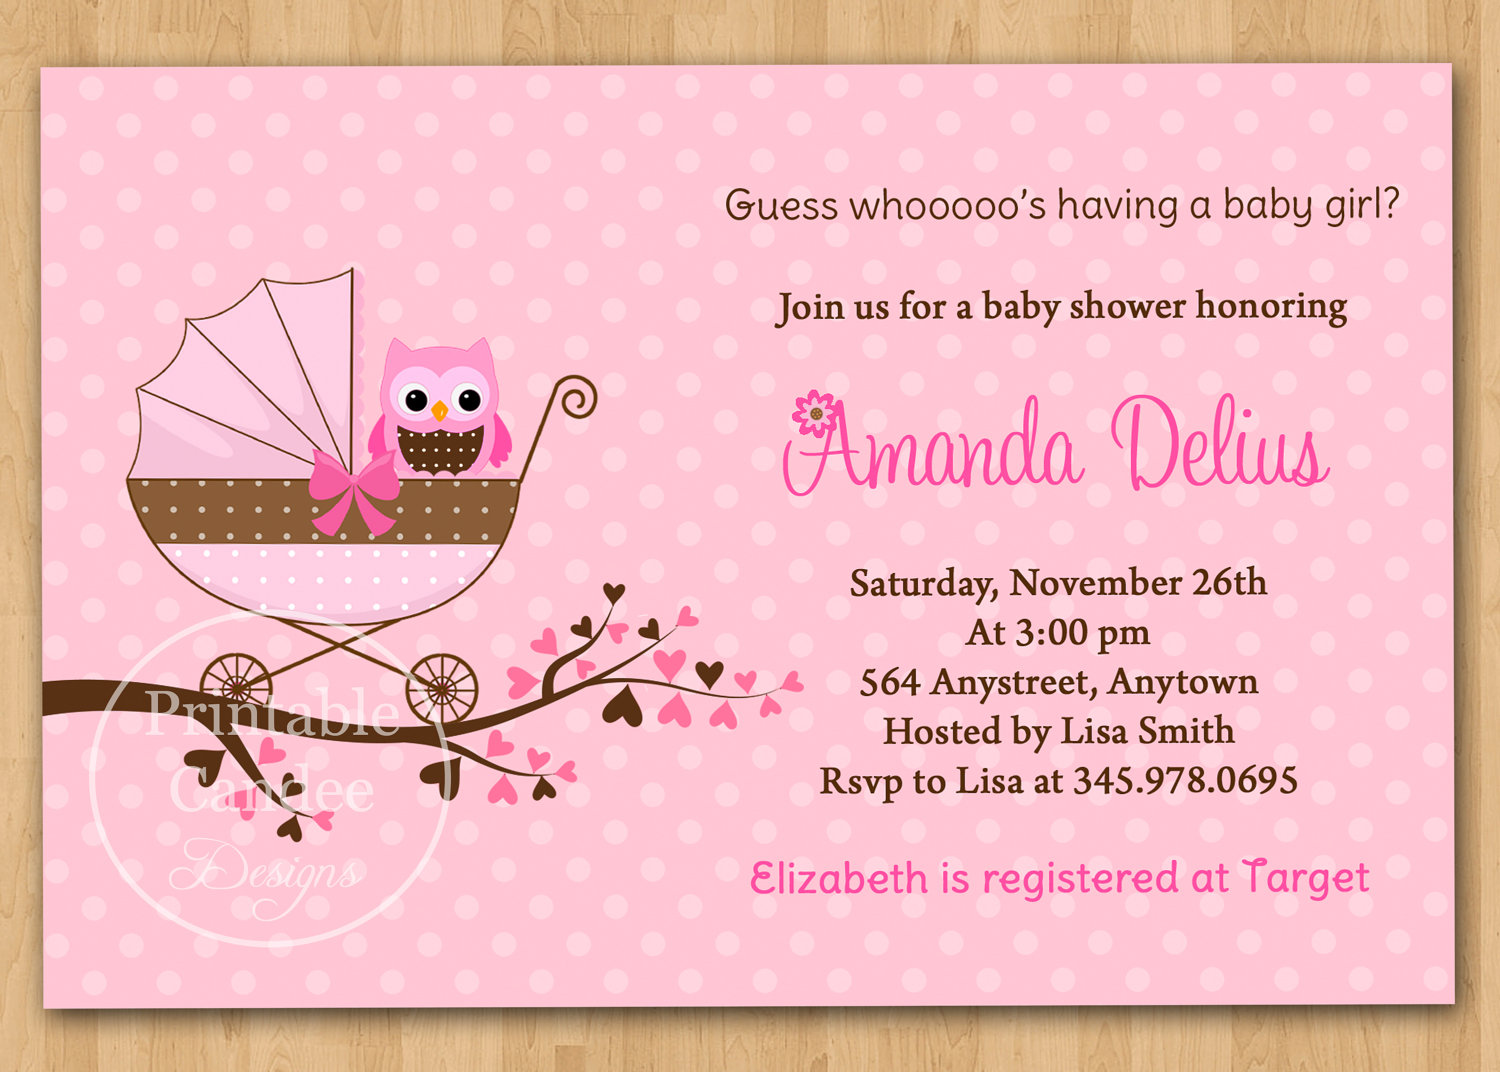 Full Size of Baby Shower:63+ Delightful Cheap Baby Shower Invitations Image Inspirations Cheap Baby Shower Invitations Baby Shower Centerpieces Princess Baby Shower Baby Shower Gifts For Girls Baby Shower Food Ideas Baby Shower Bingo